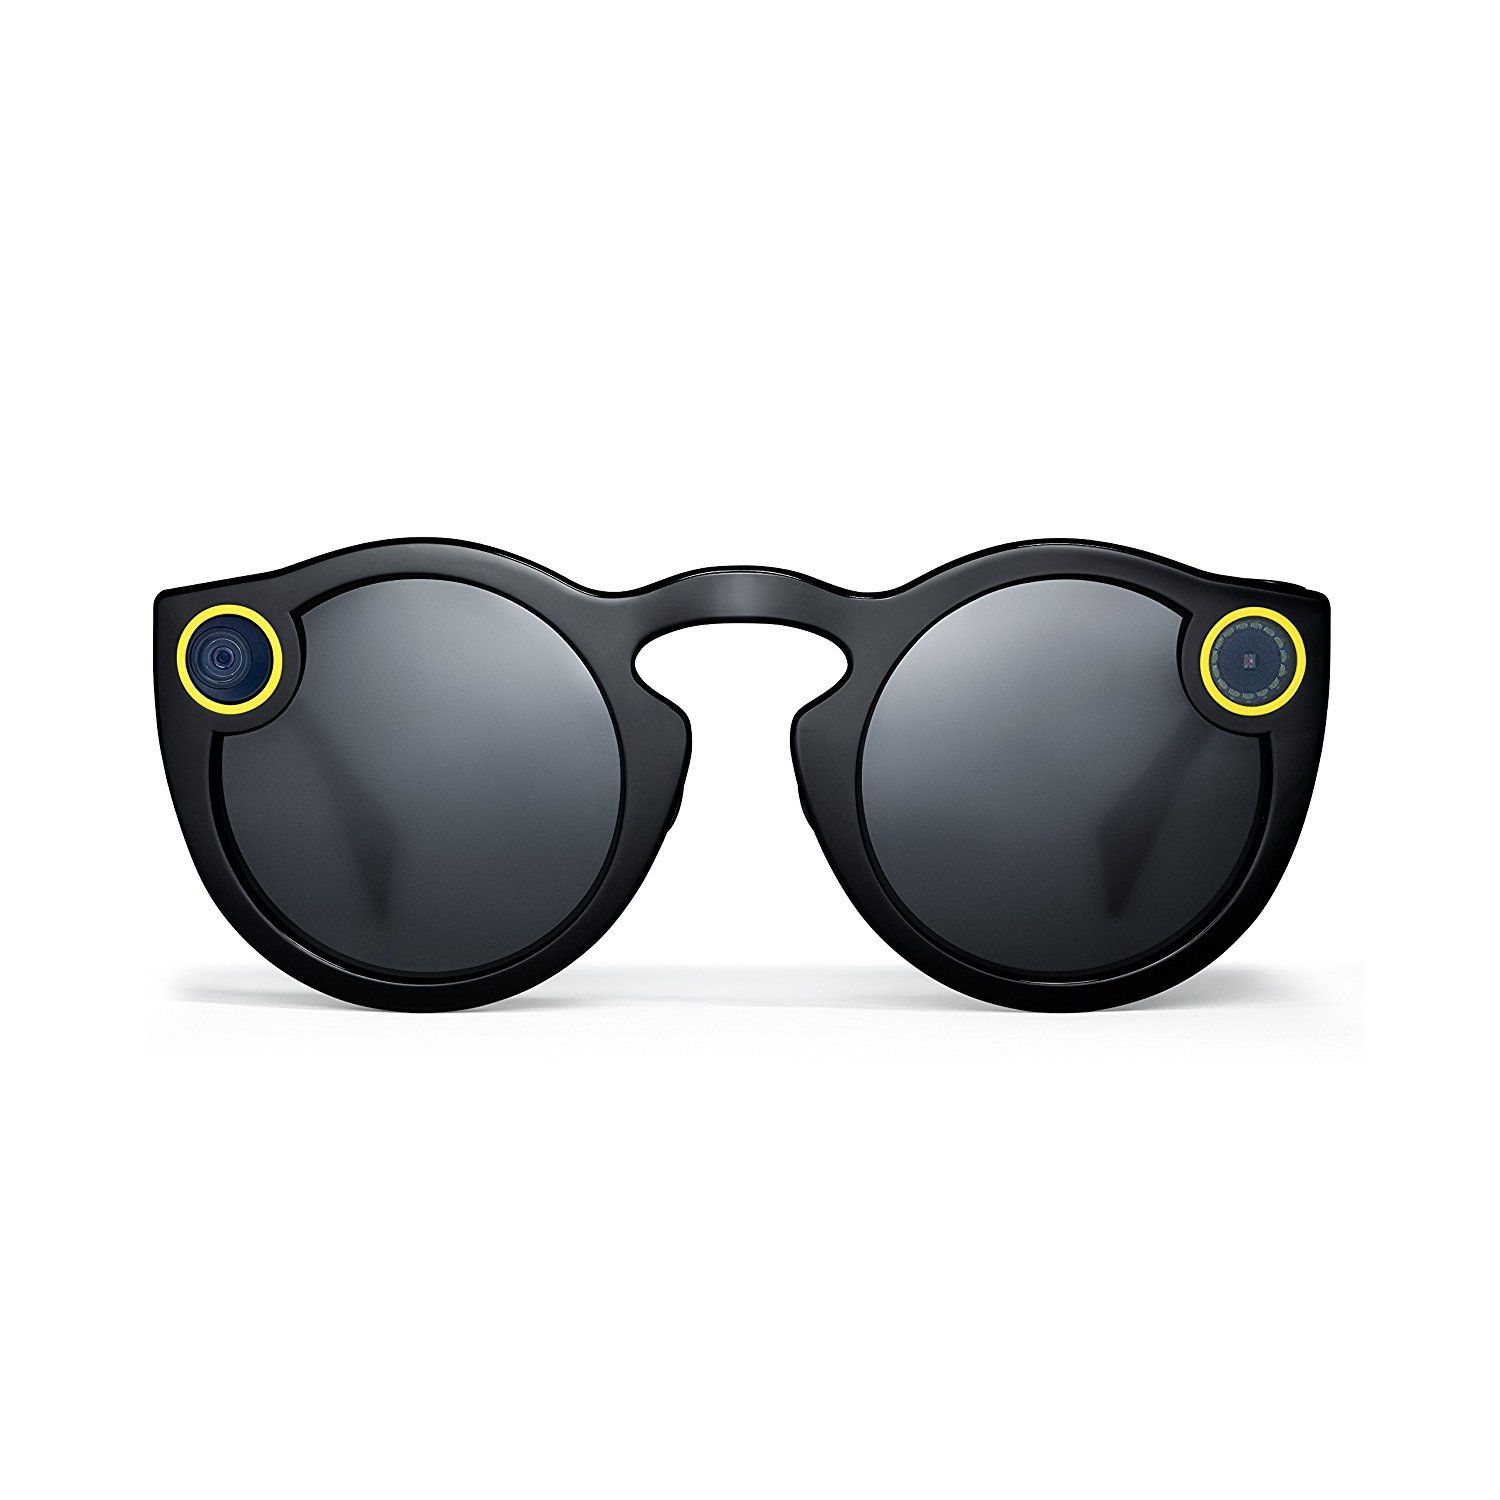 4dee8b8fee 2016 Spectacles by Snap Inc.  Amazon.co.uk  Camera   Photo